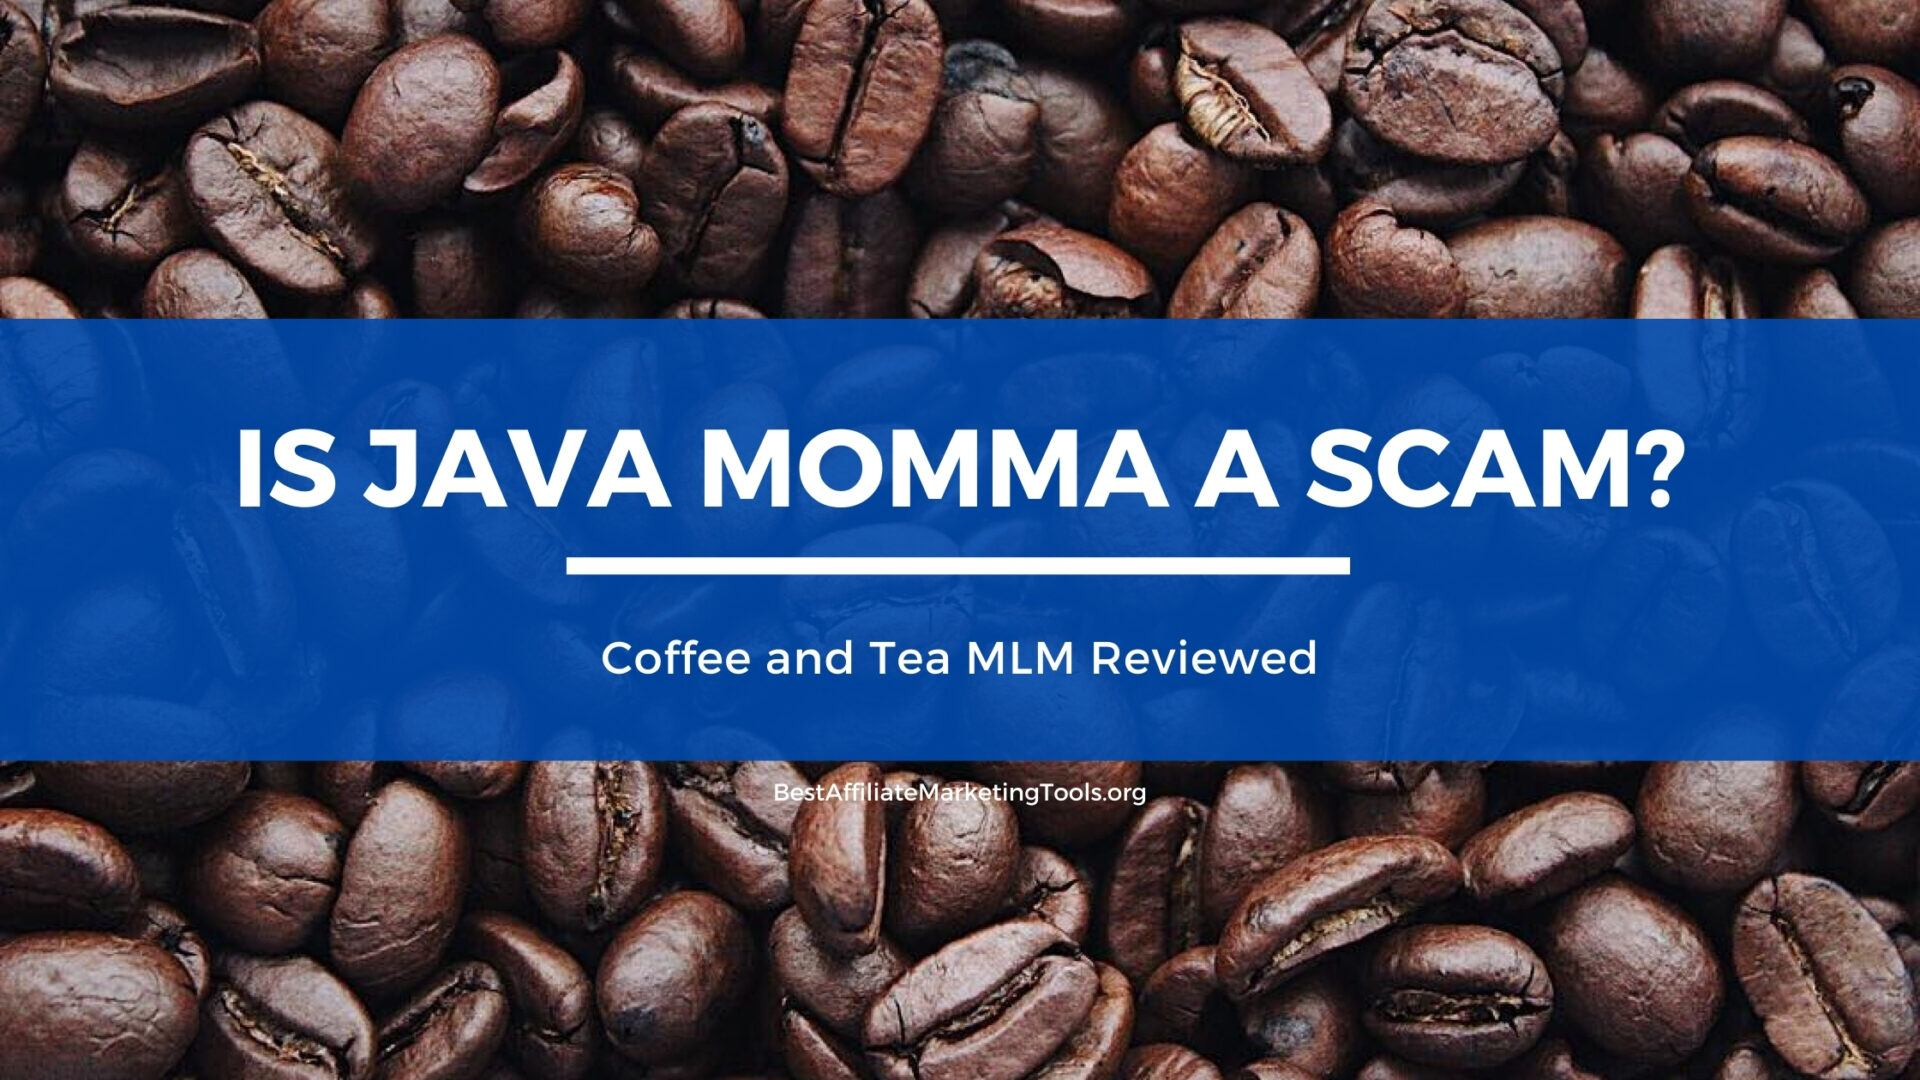 Is Java Momma a Scam